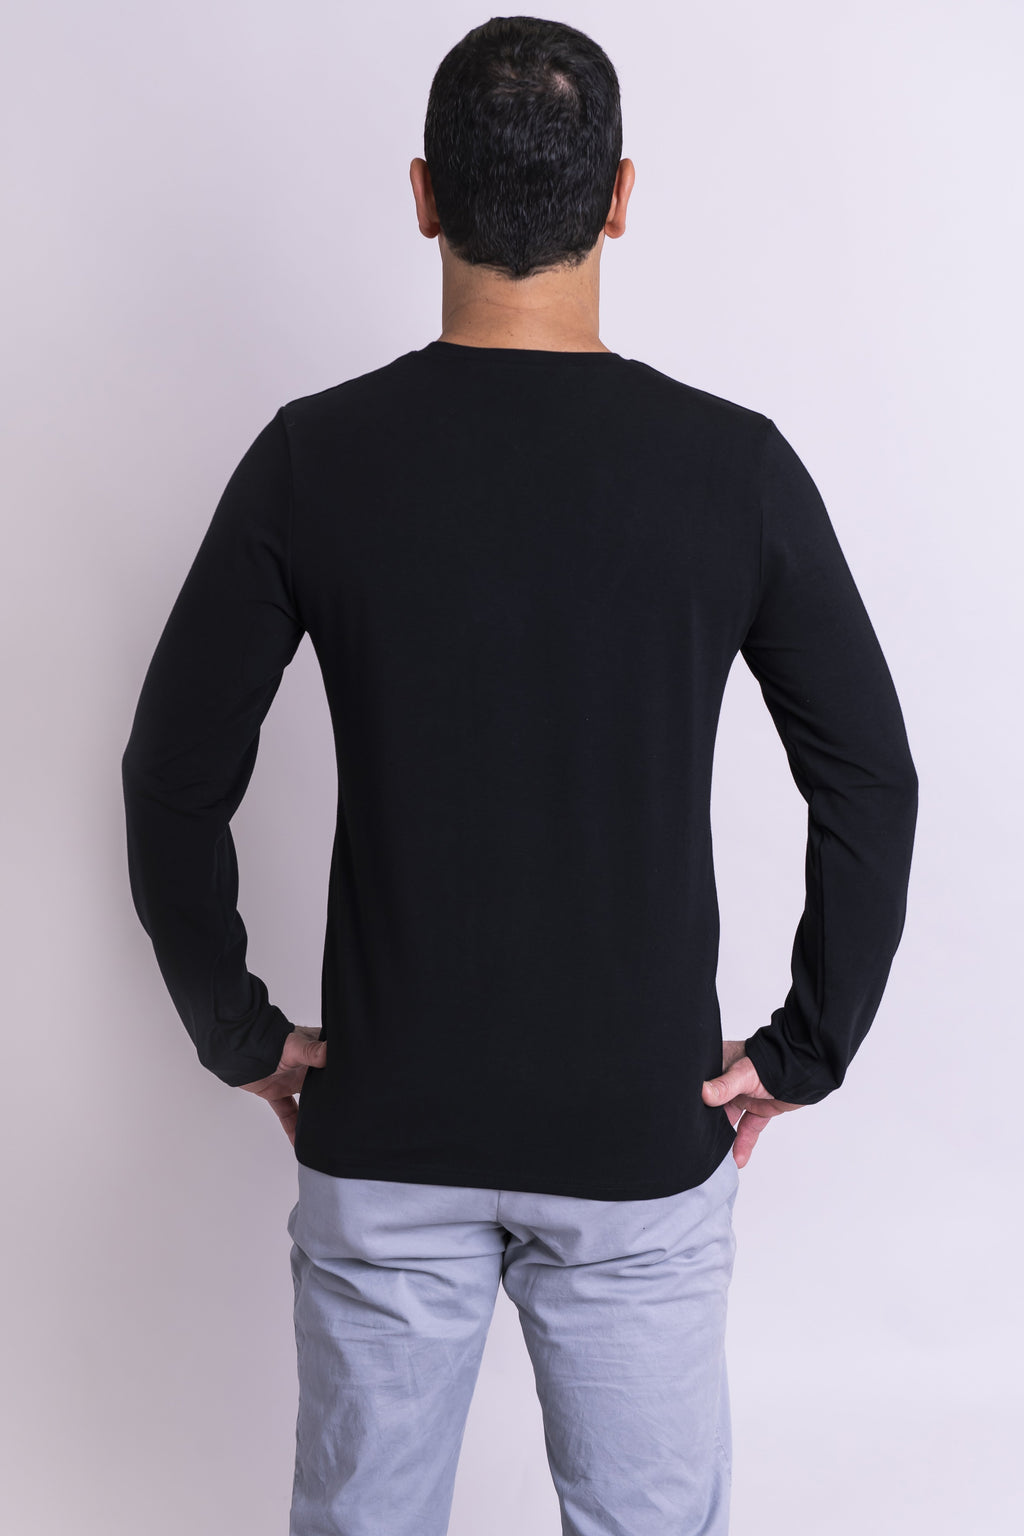 Adam Long Sleeve, Black, Bamboo - Blue Sky Clothing Co